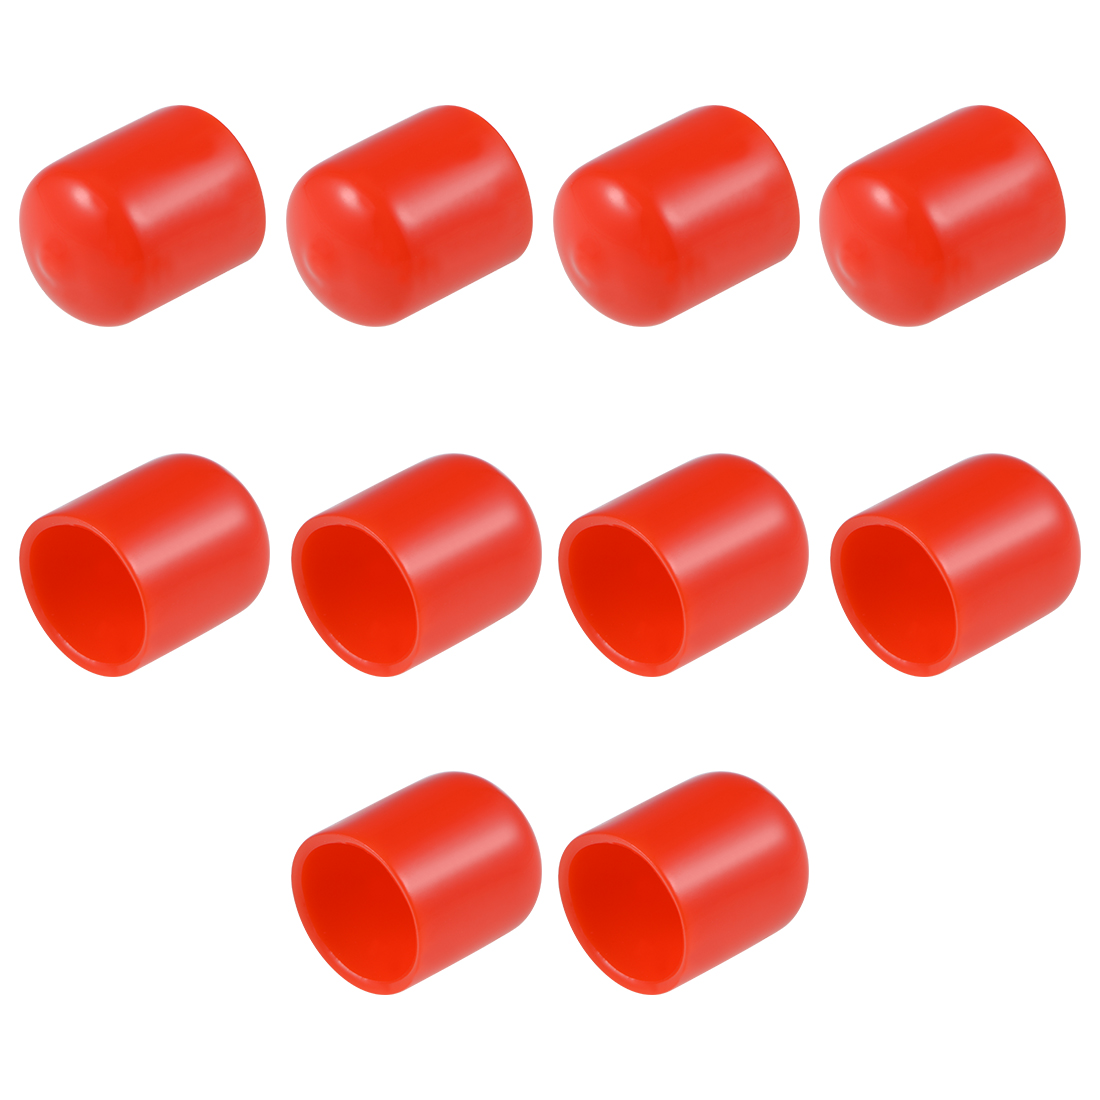 Screw Thread Protectors, 18mm ID 25mm Length Round End Cap Cover Red 10pcs